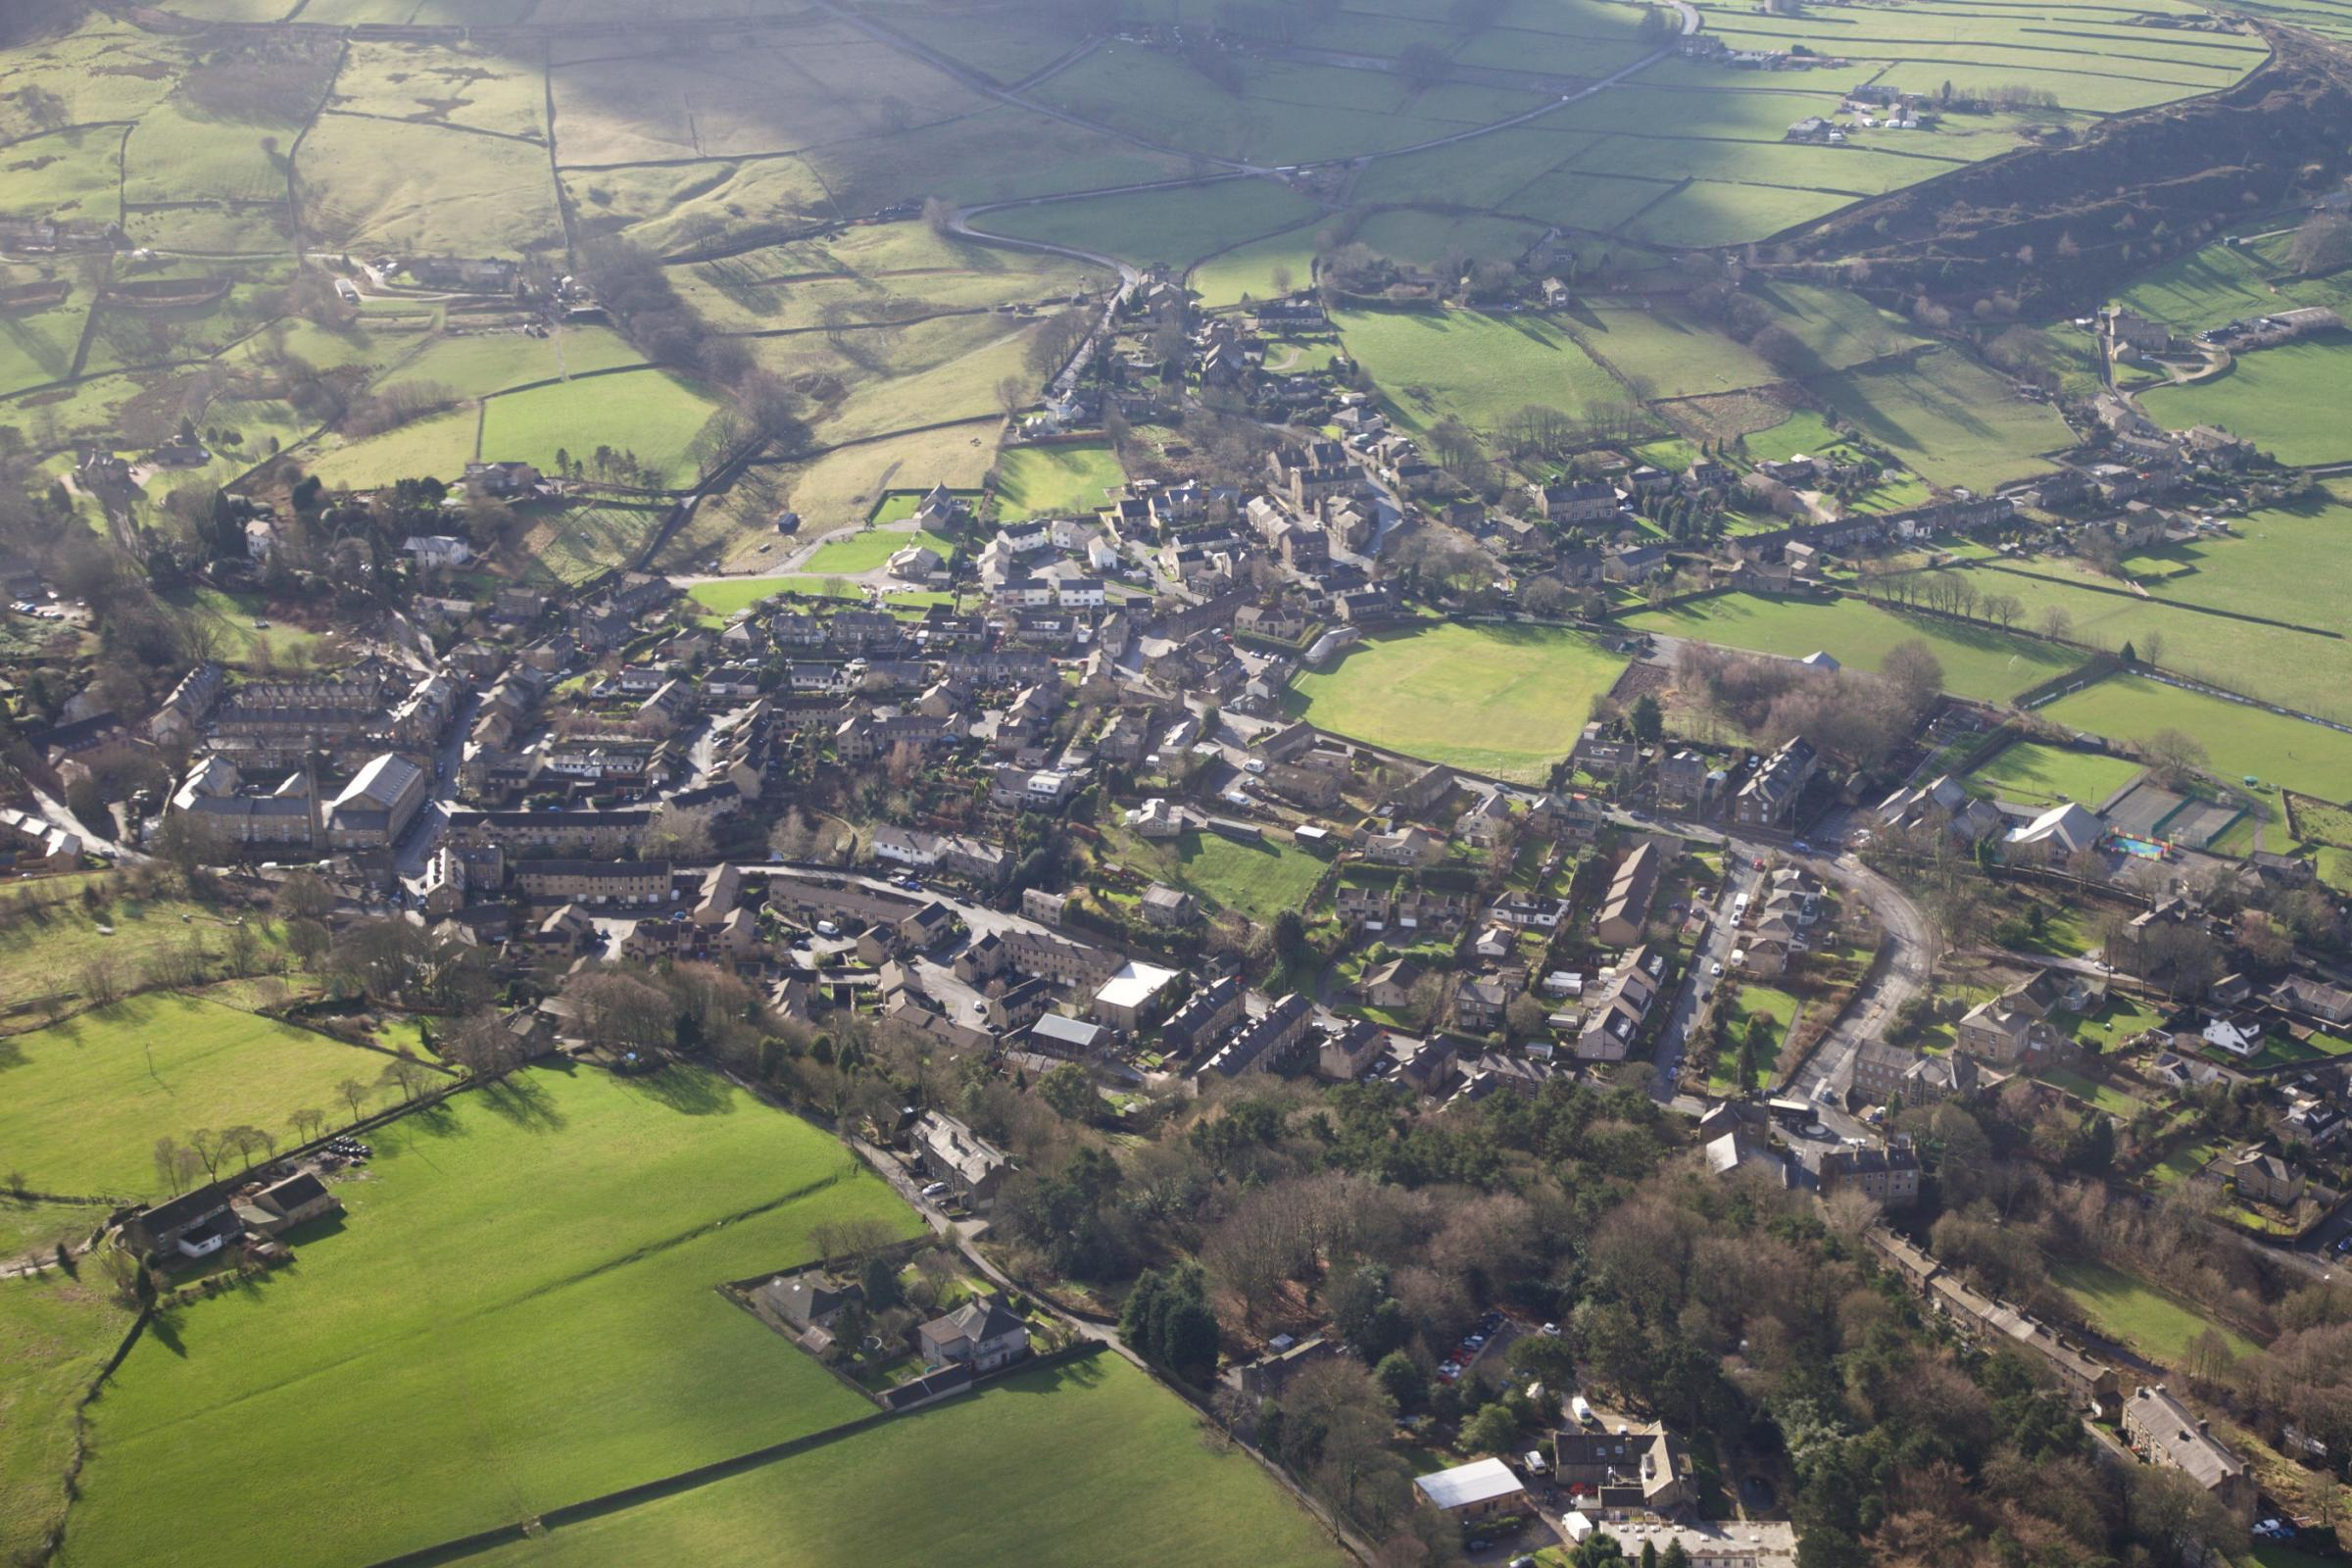 An aerial view of Oxenhope